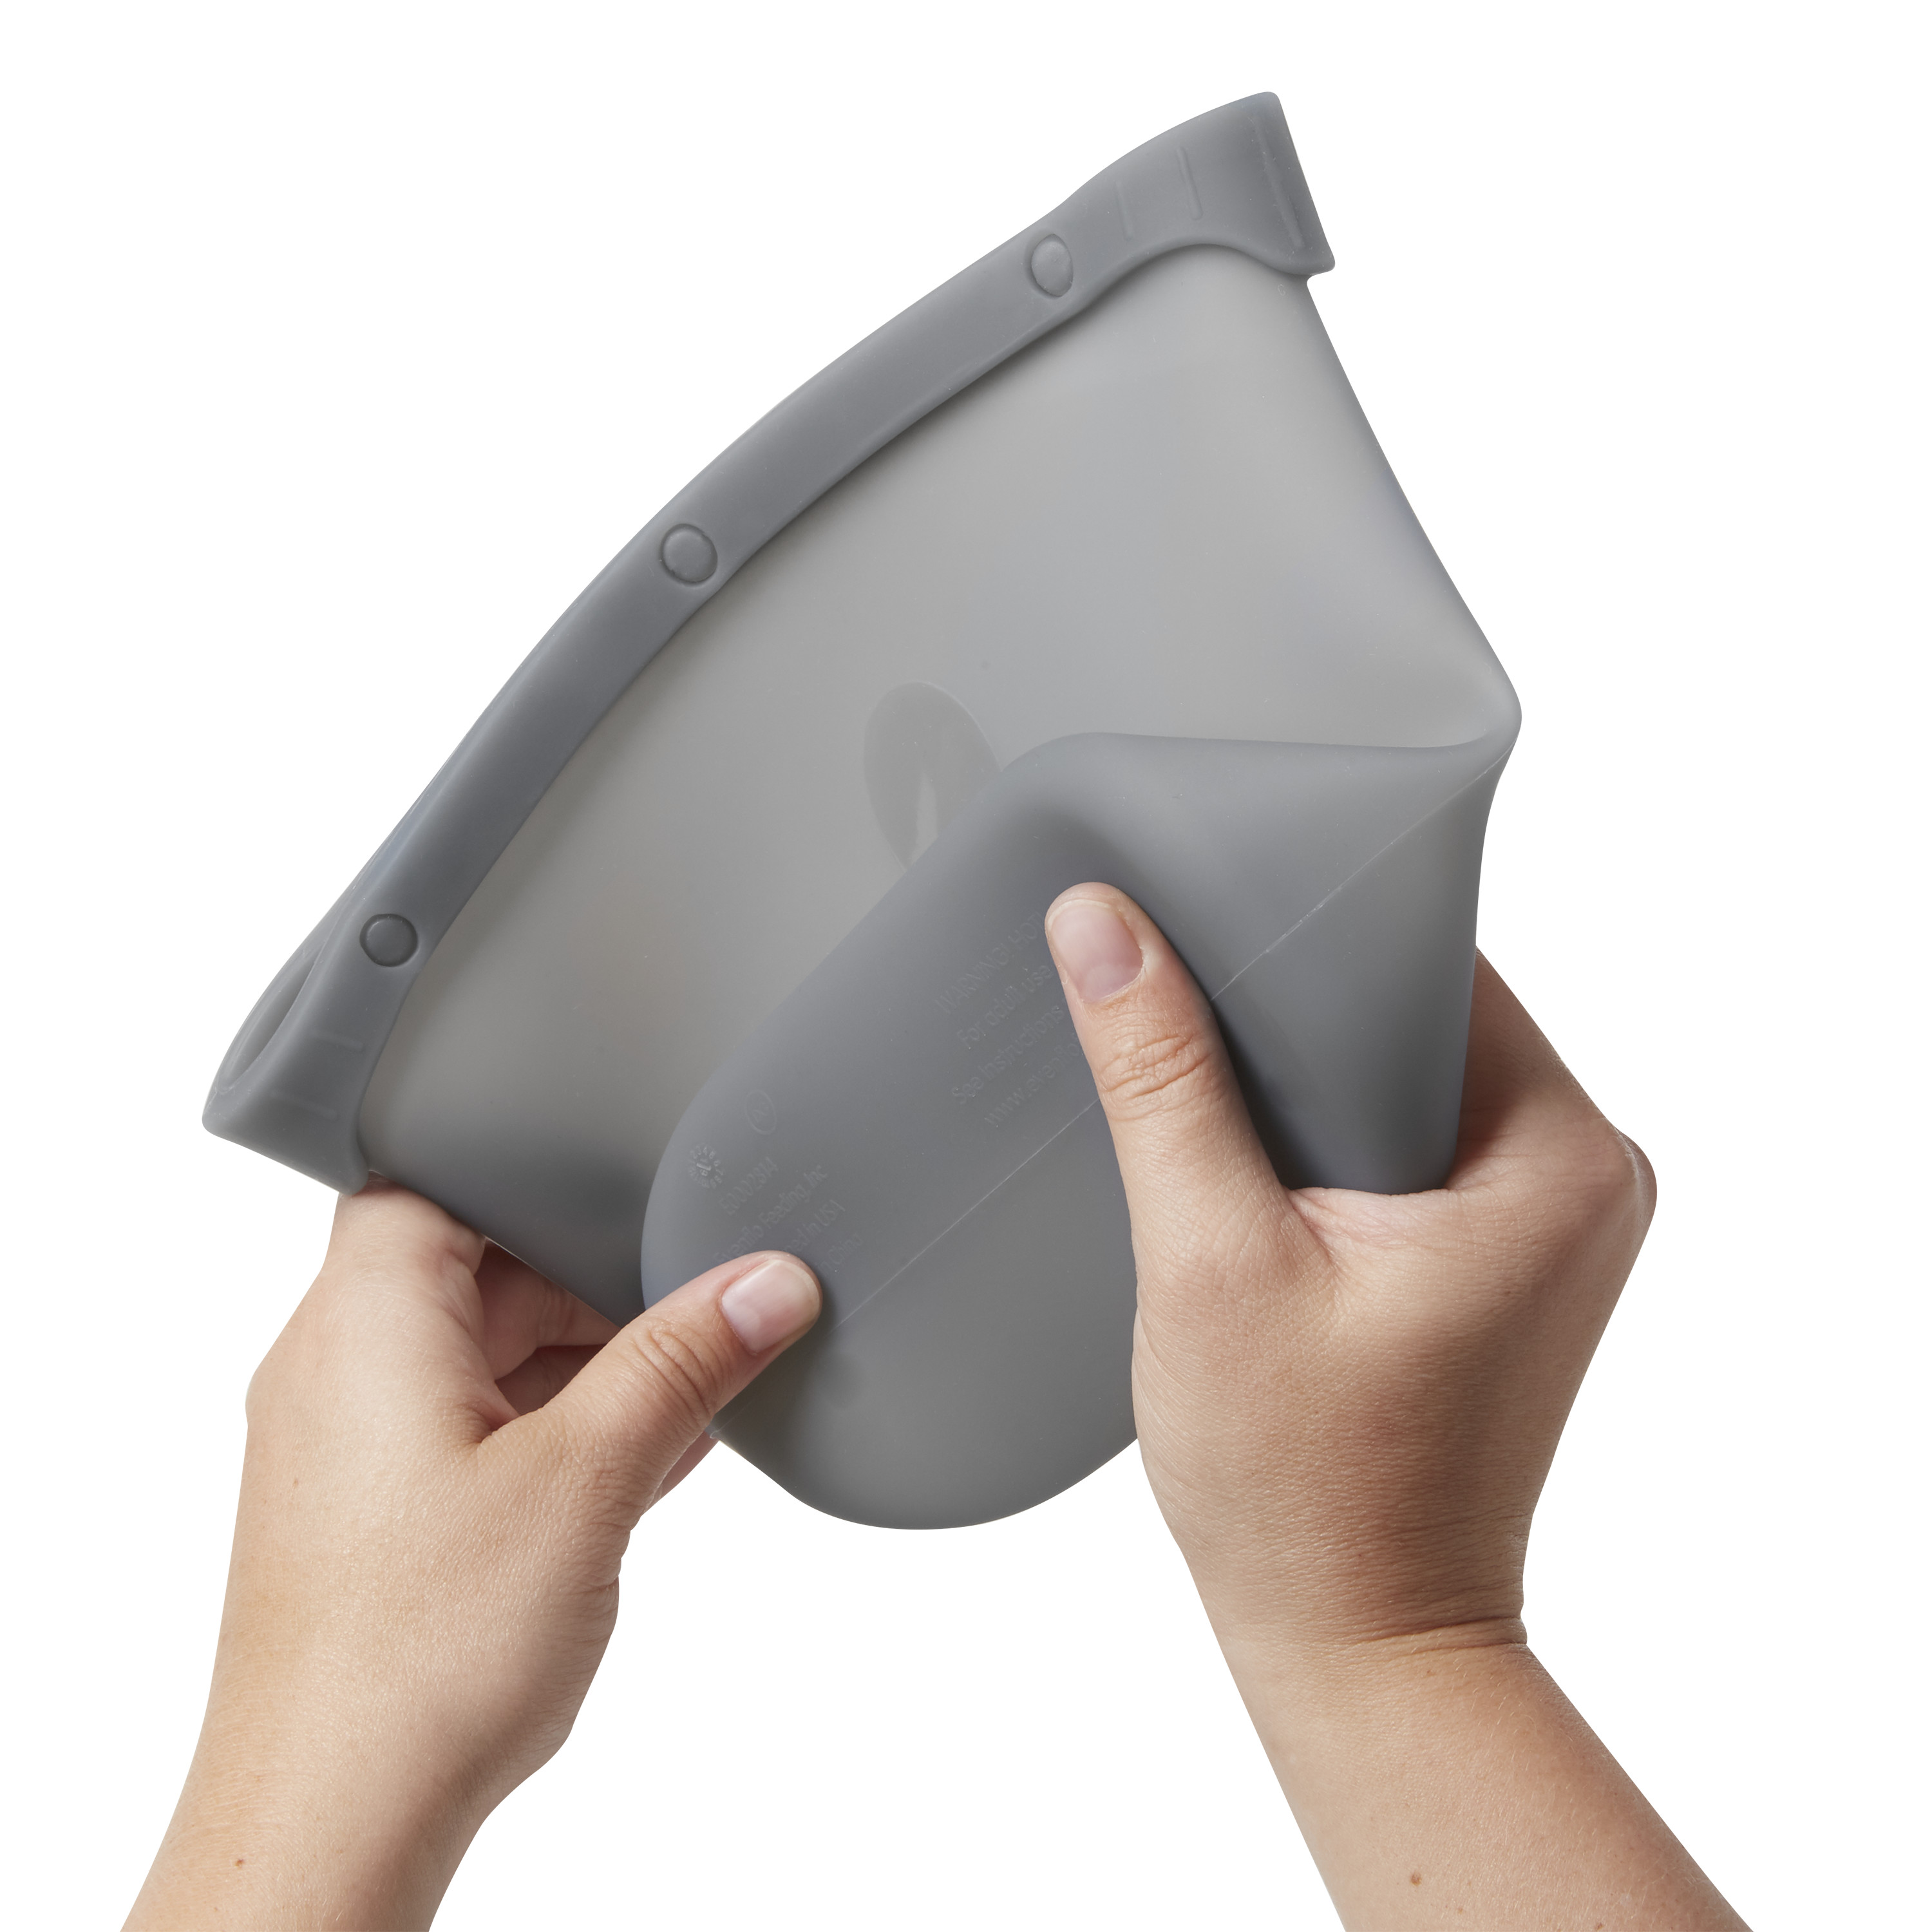 ♨️ Silicone Steam Sanitizing Bag Evenflo